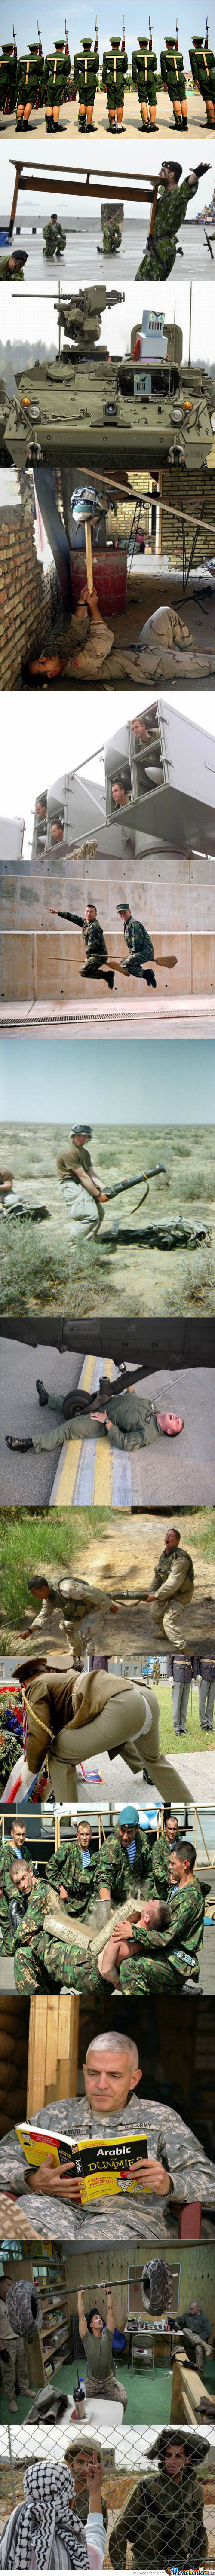 Meanwhile...in The Army!